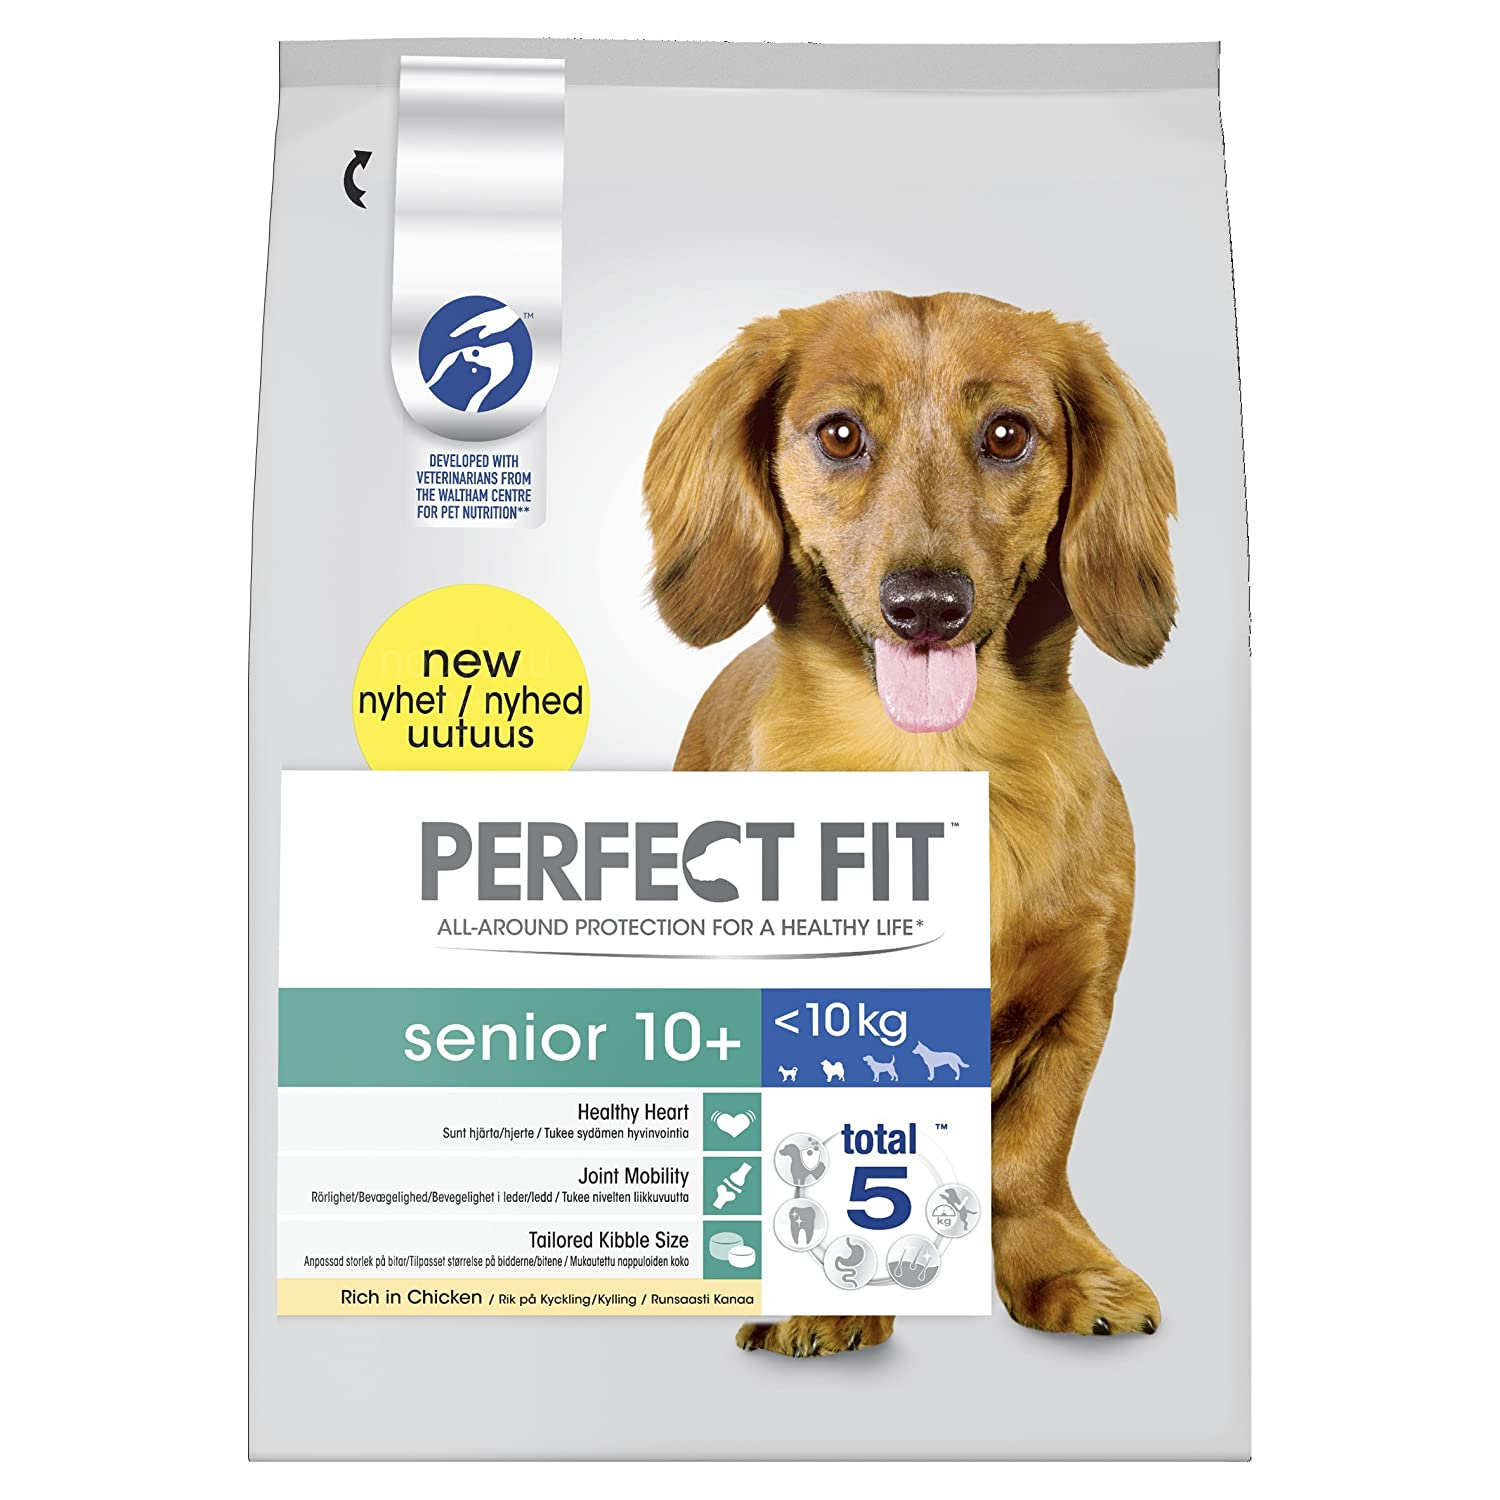 Perfect Fit food: description and feedback of veterinarians